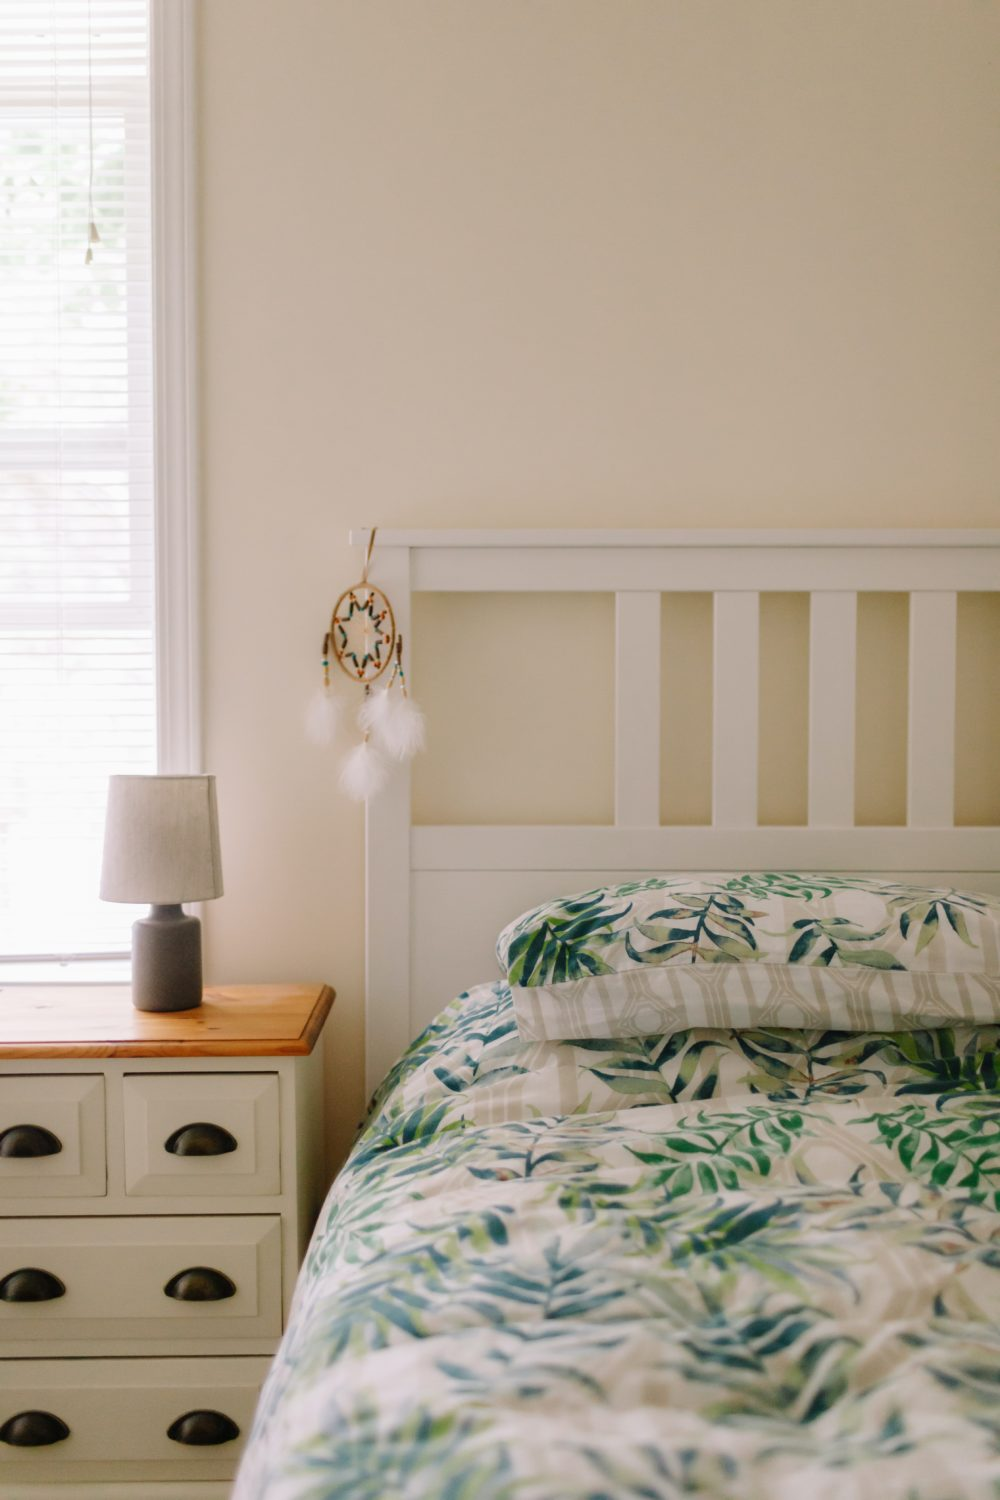 Updating a guest room on a budget 1